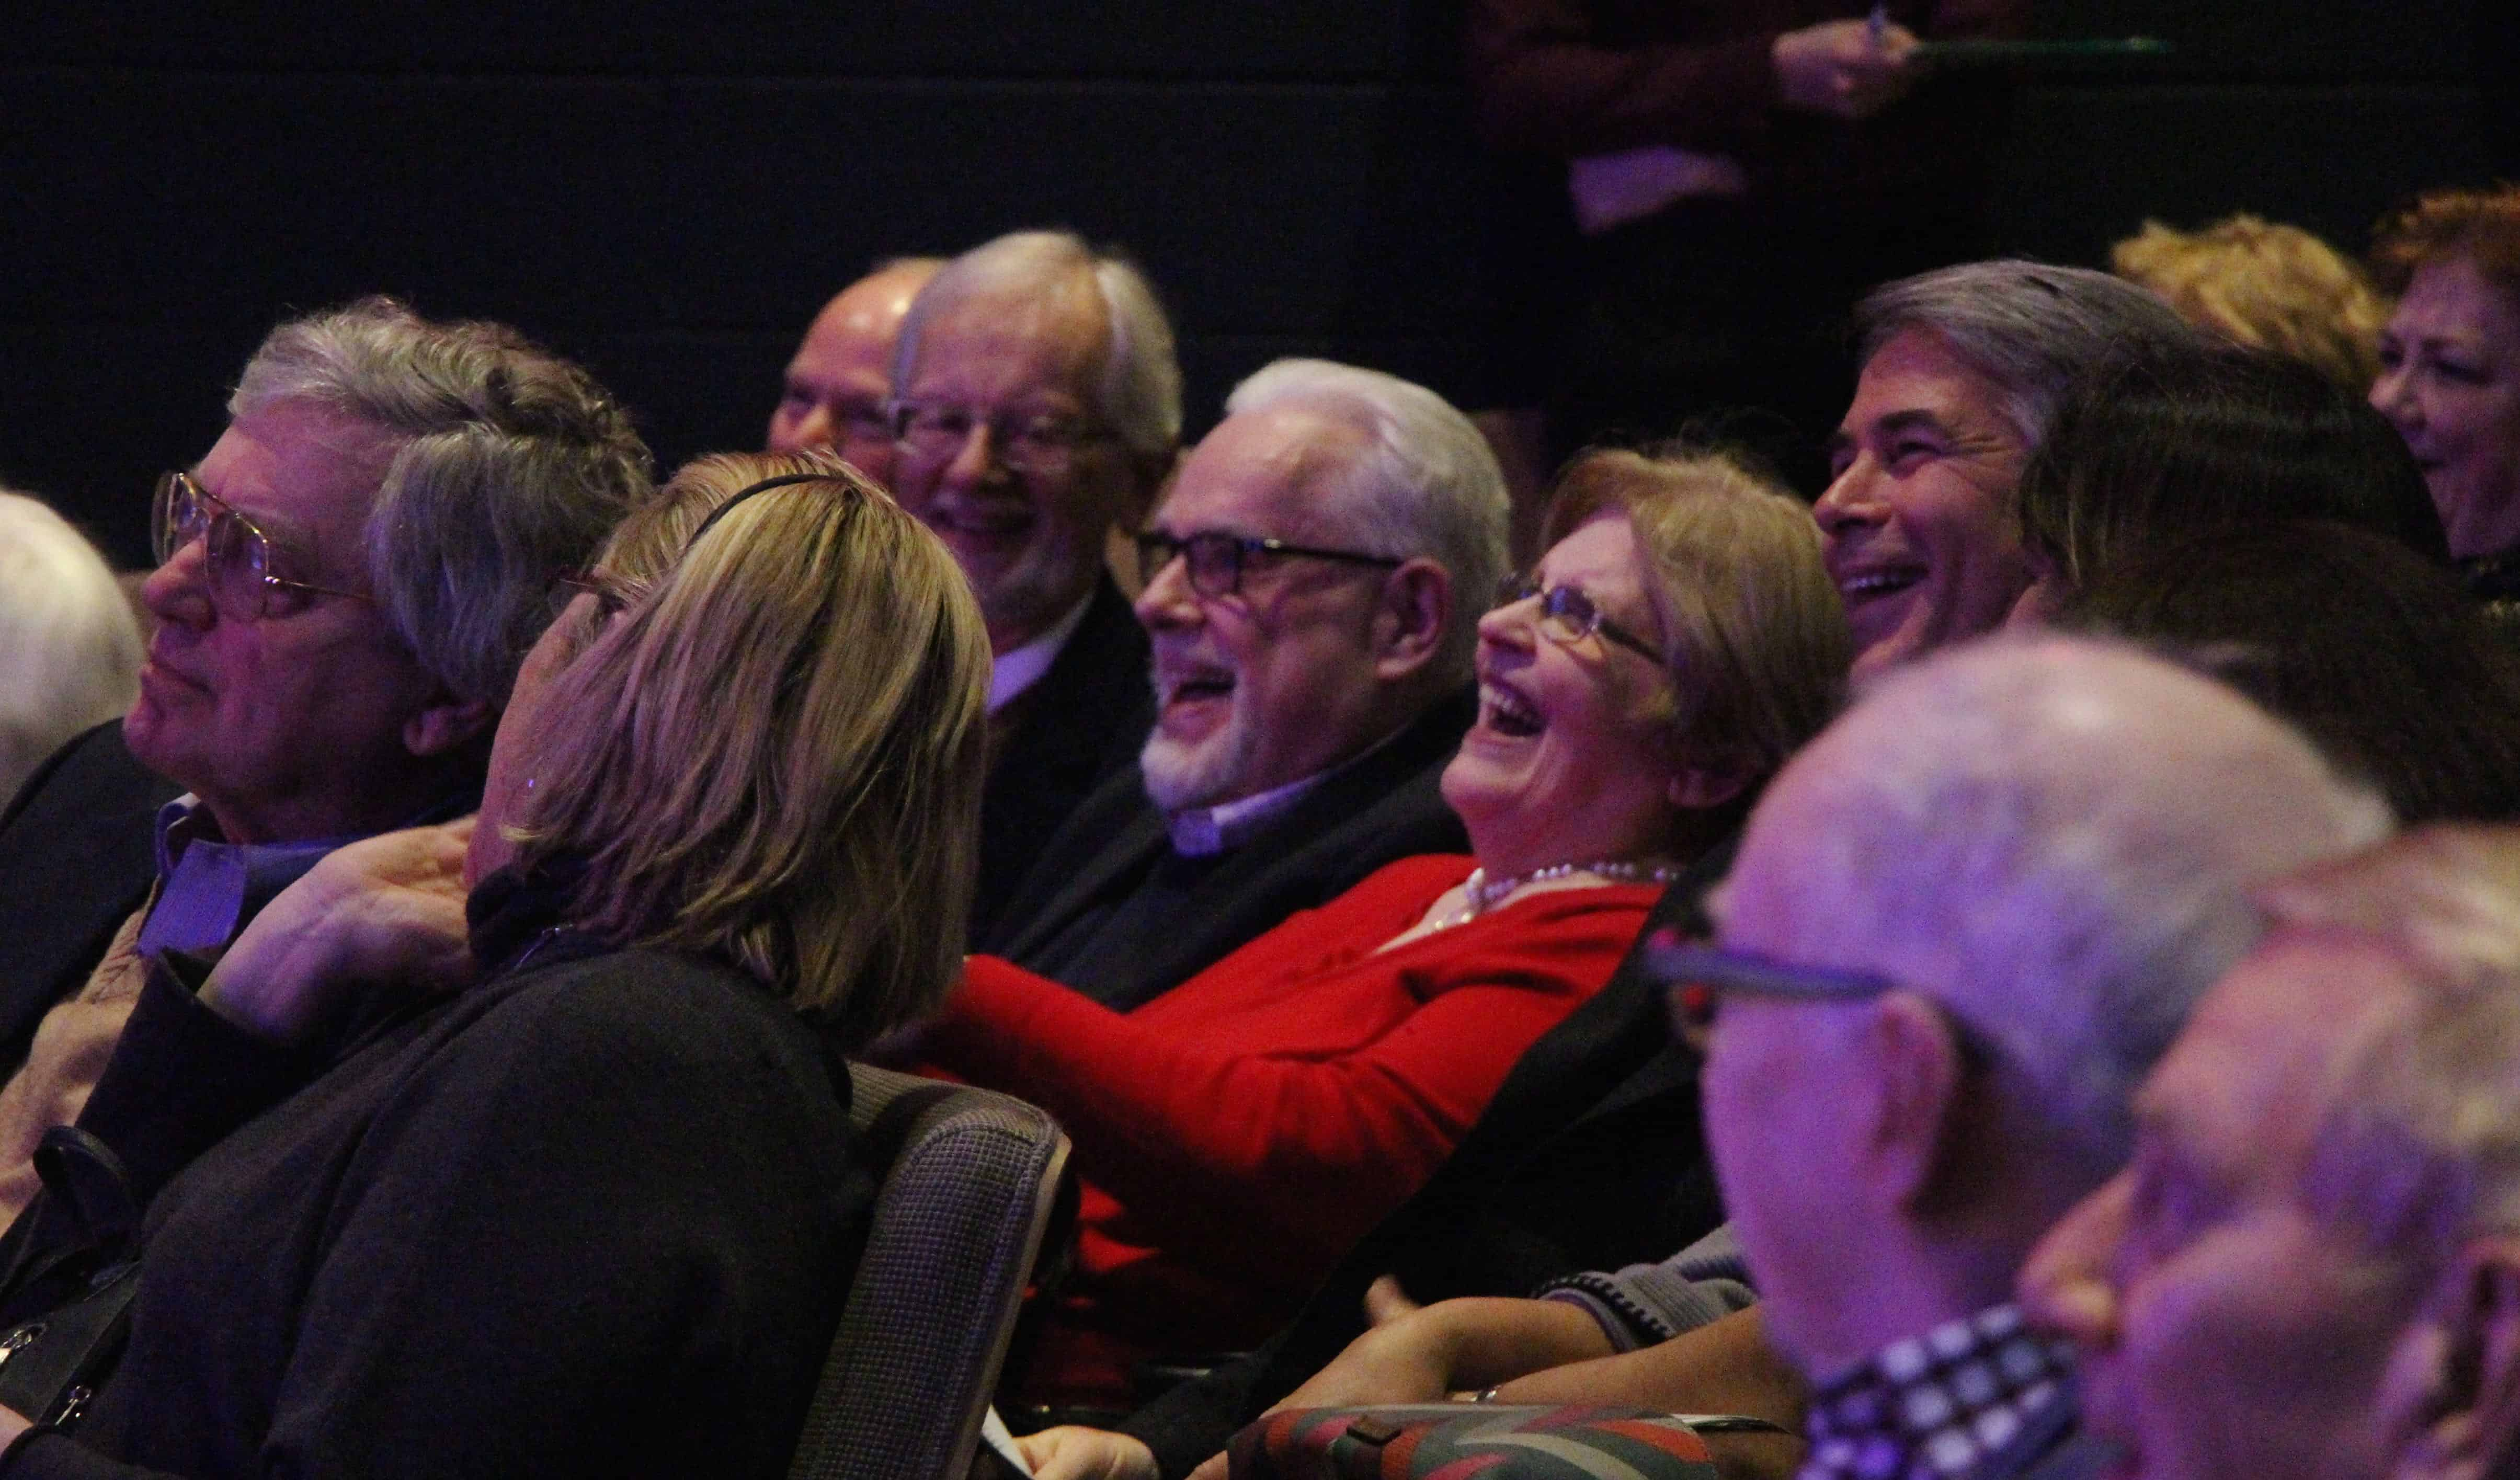 And the audience that loved them!!!